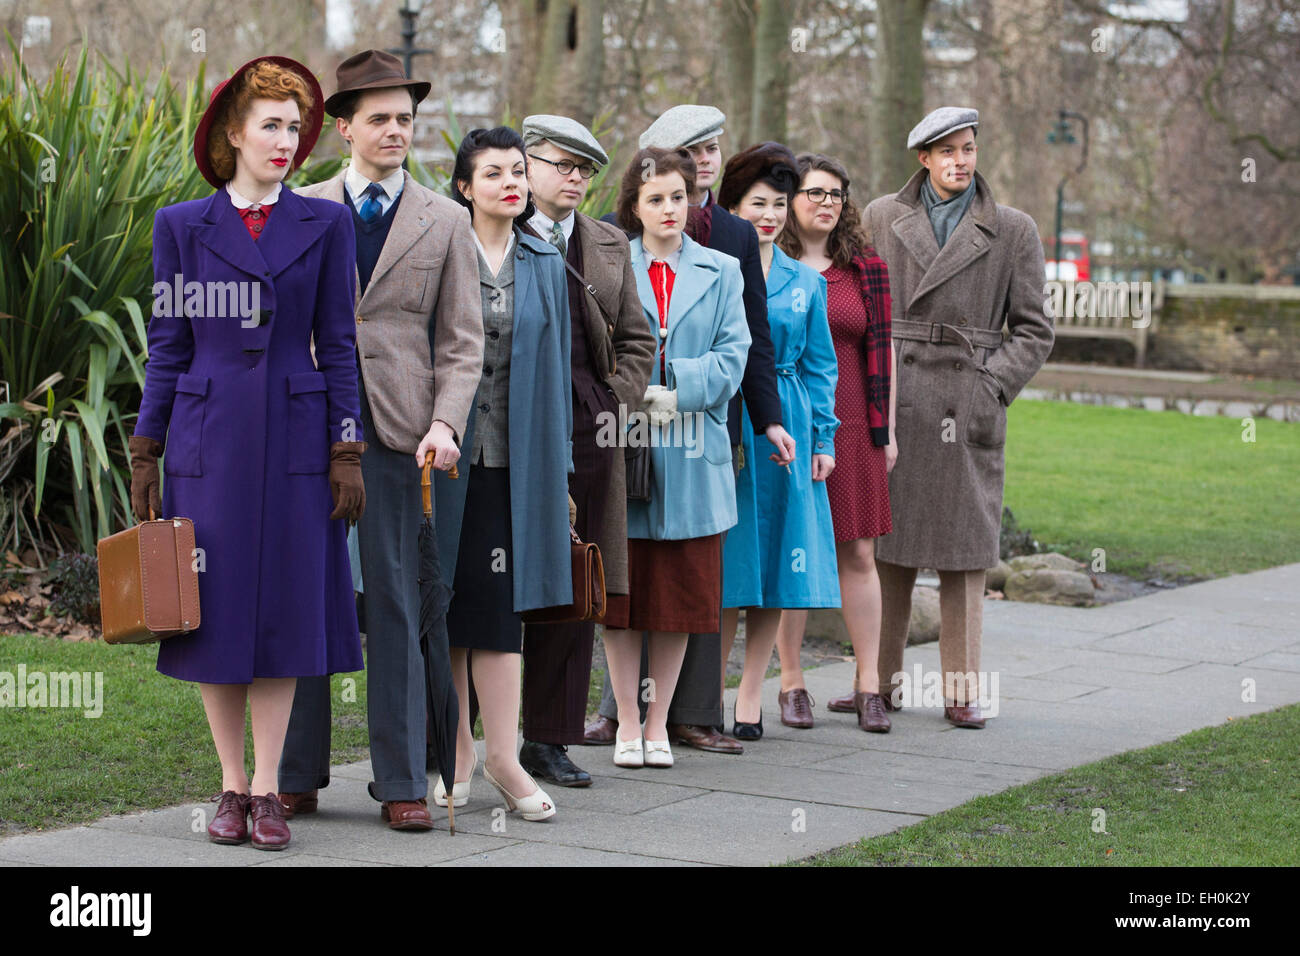 London, UK. 3 March 2015. Photocall with models dressed in ...